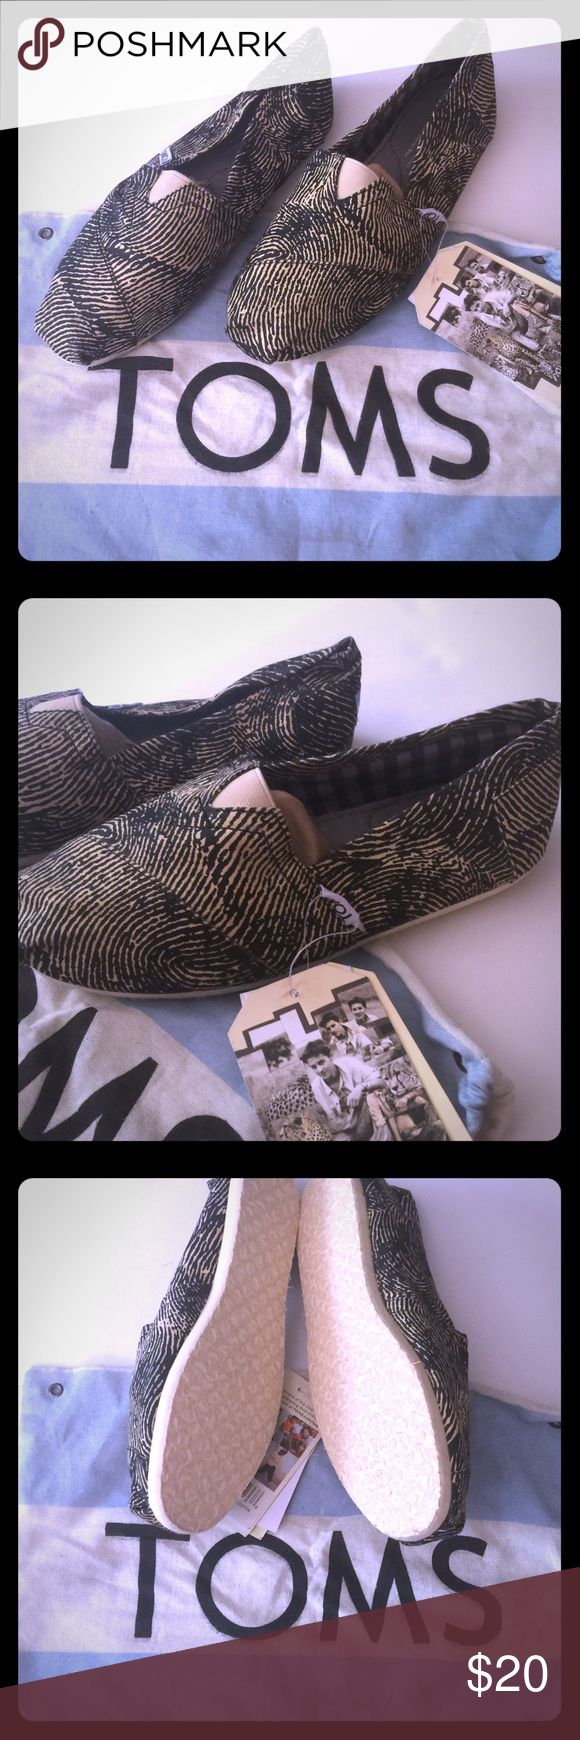 NWT TOMS Classic Fingerprint Shoes New with tags Womens TOMS Classic Organic Cotton Fingerprint Black Casual Slip On Shoes. Toms Shoes